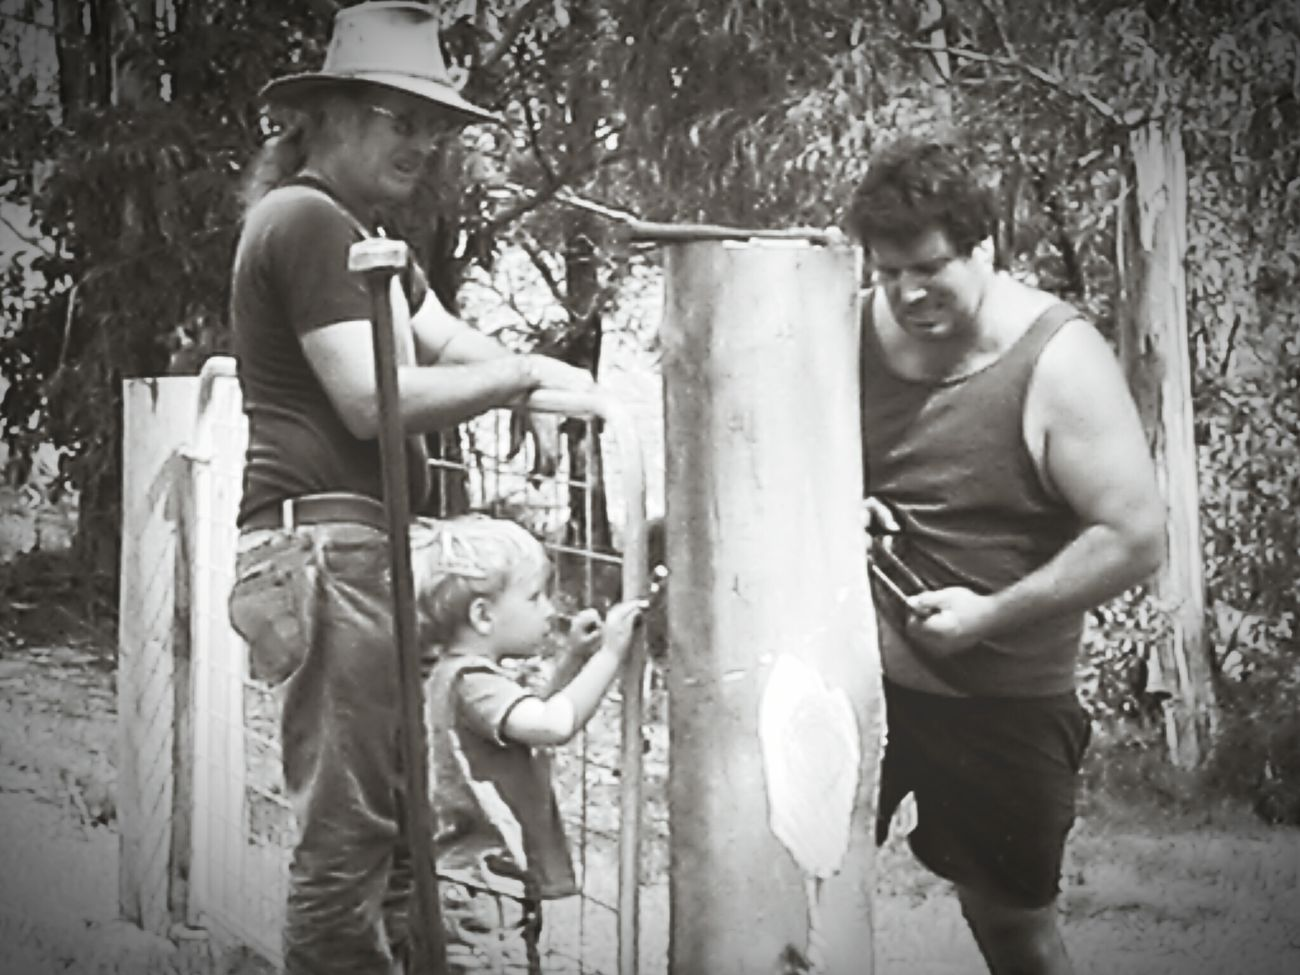 RePicture Masculinity Farming Fencing The Old Ways... Black And White Teaching The Youth  Watching Dad How Its Done Son Hand Drill Gate